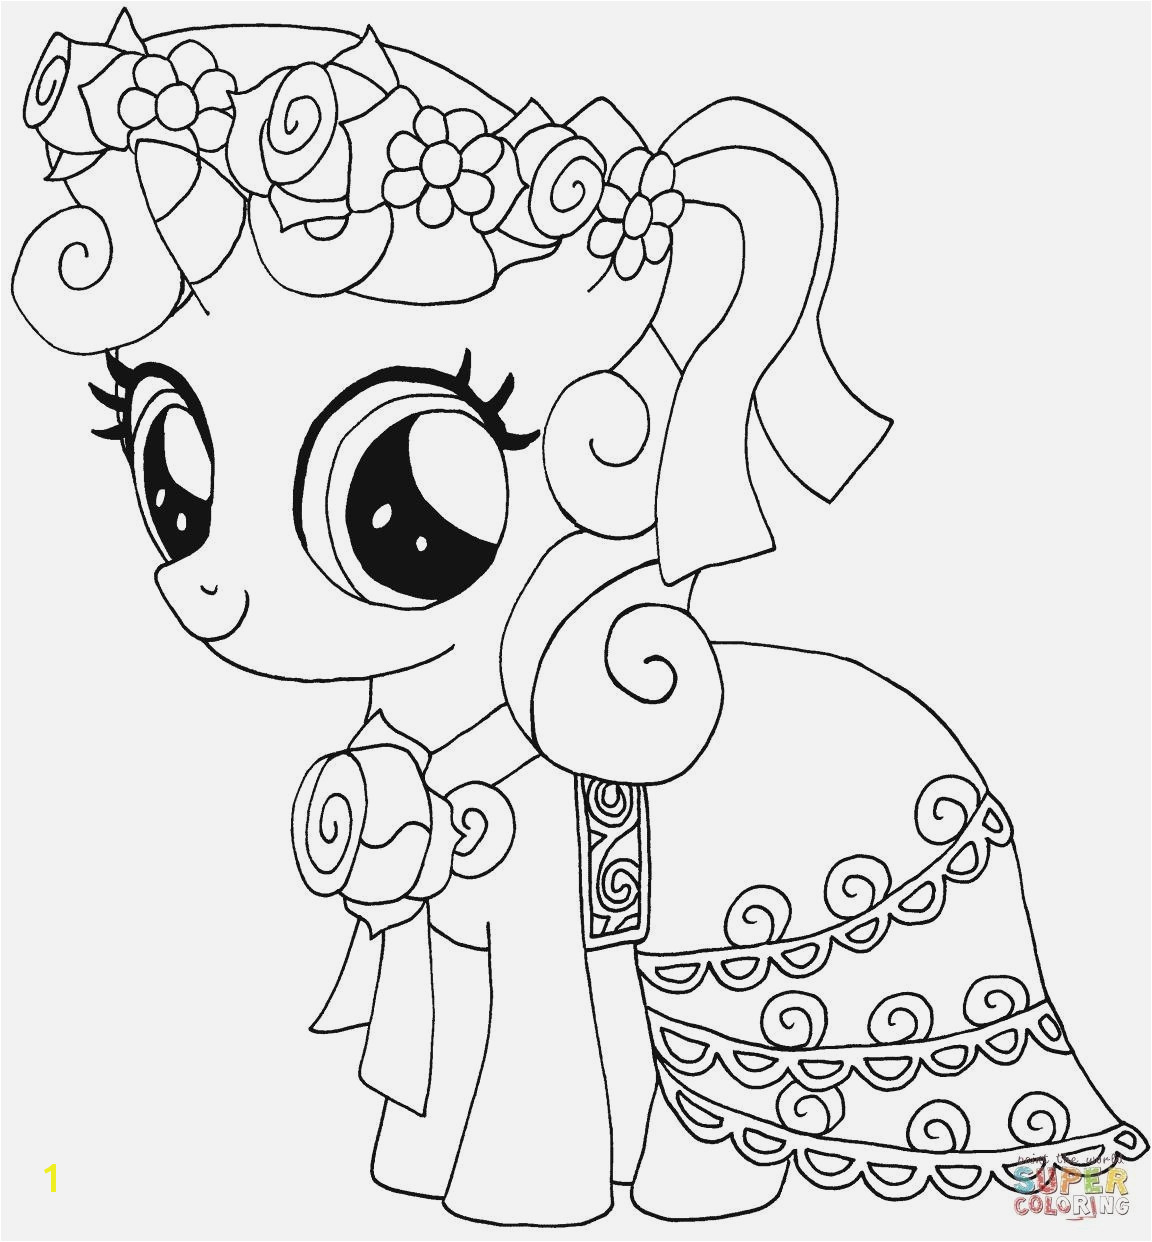 My Little Pony Coloring Pages Best Easy Coloring Pages My Little Pony Litten Coloring Pages Lovely Best Od